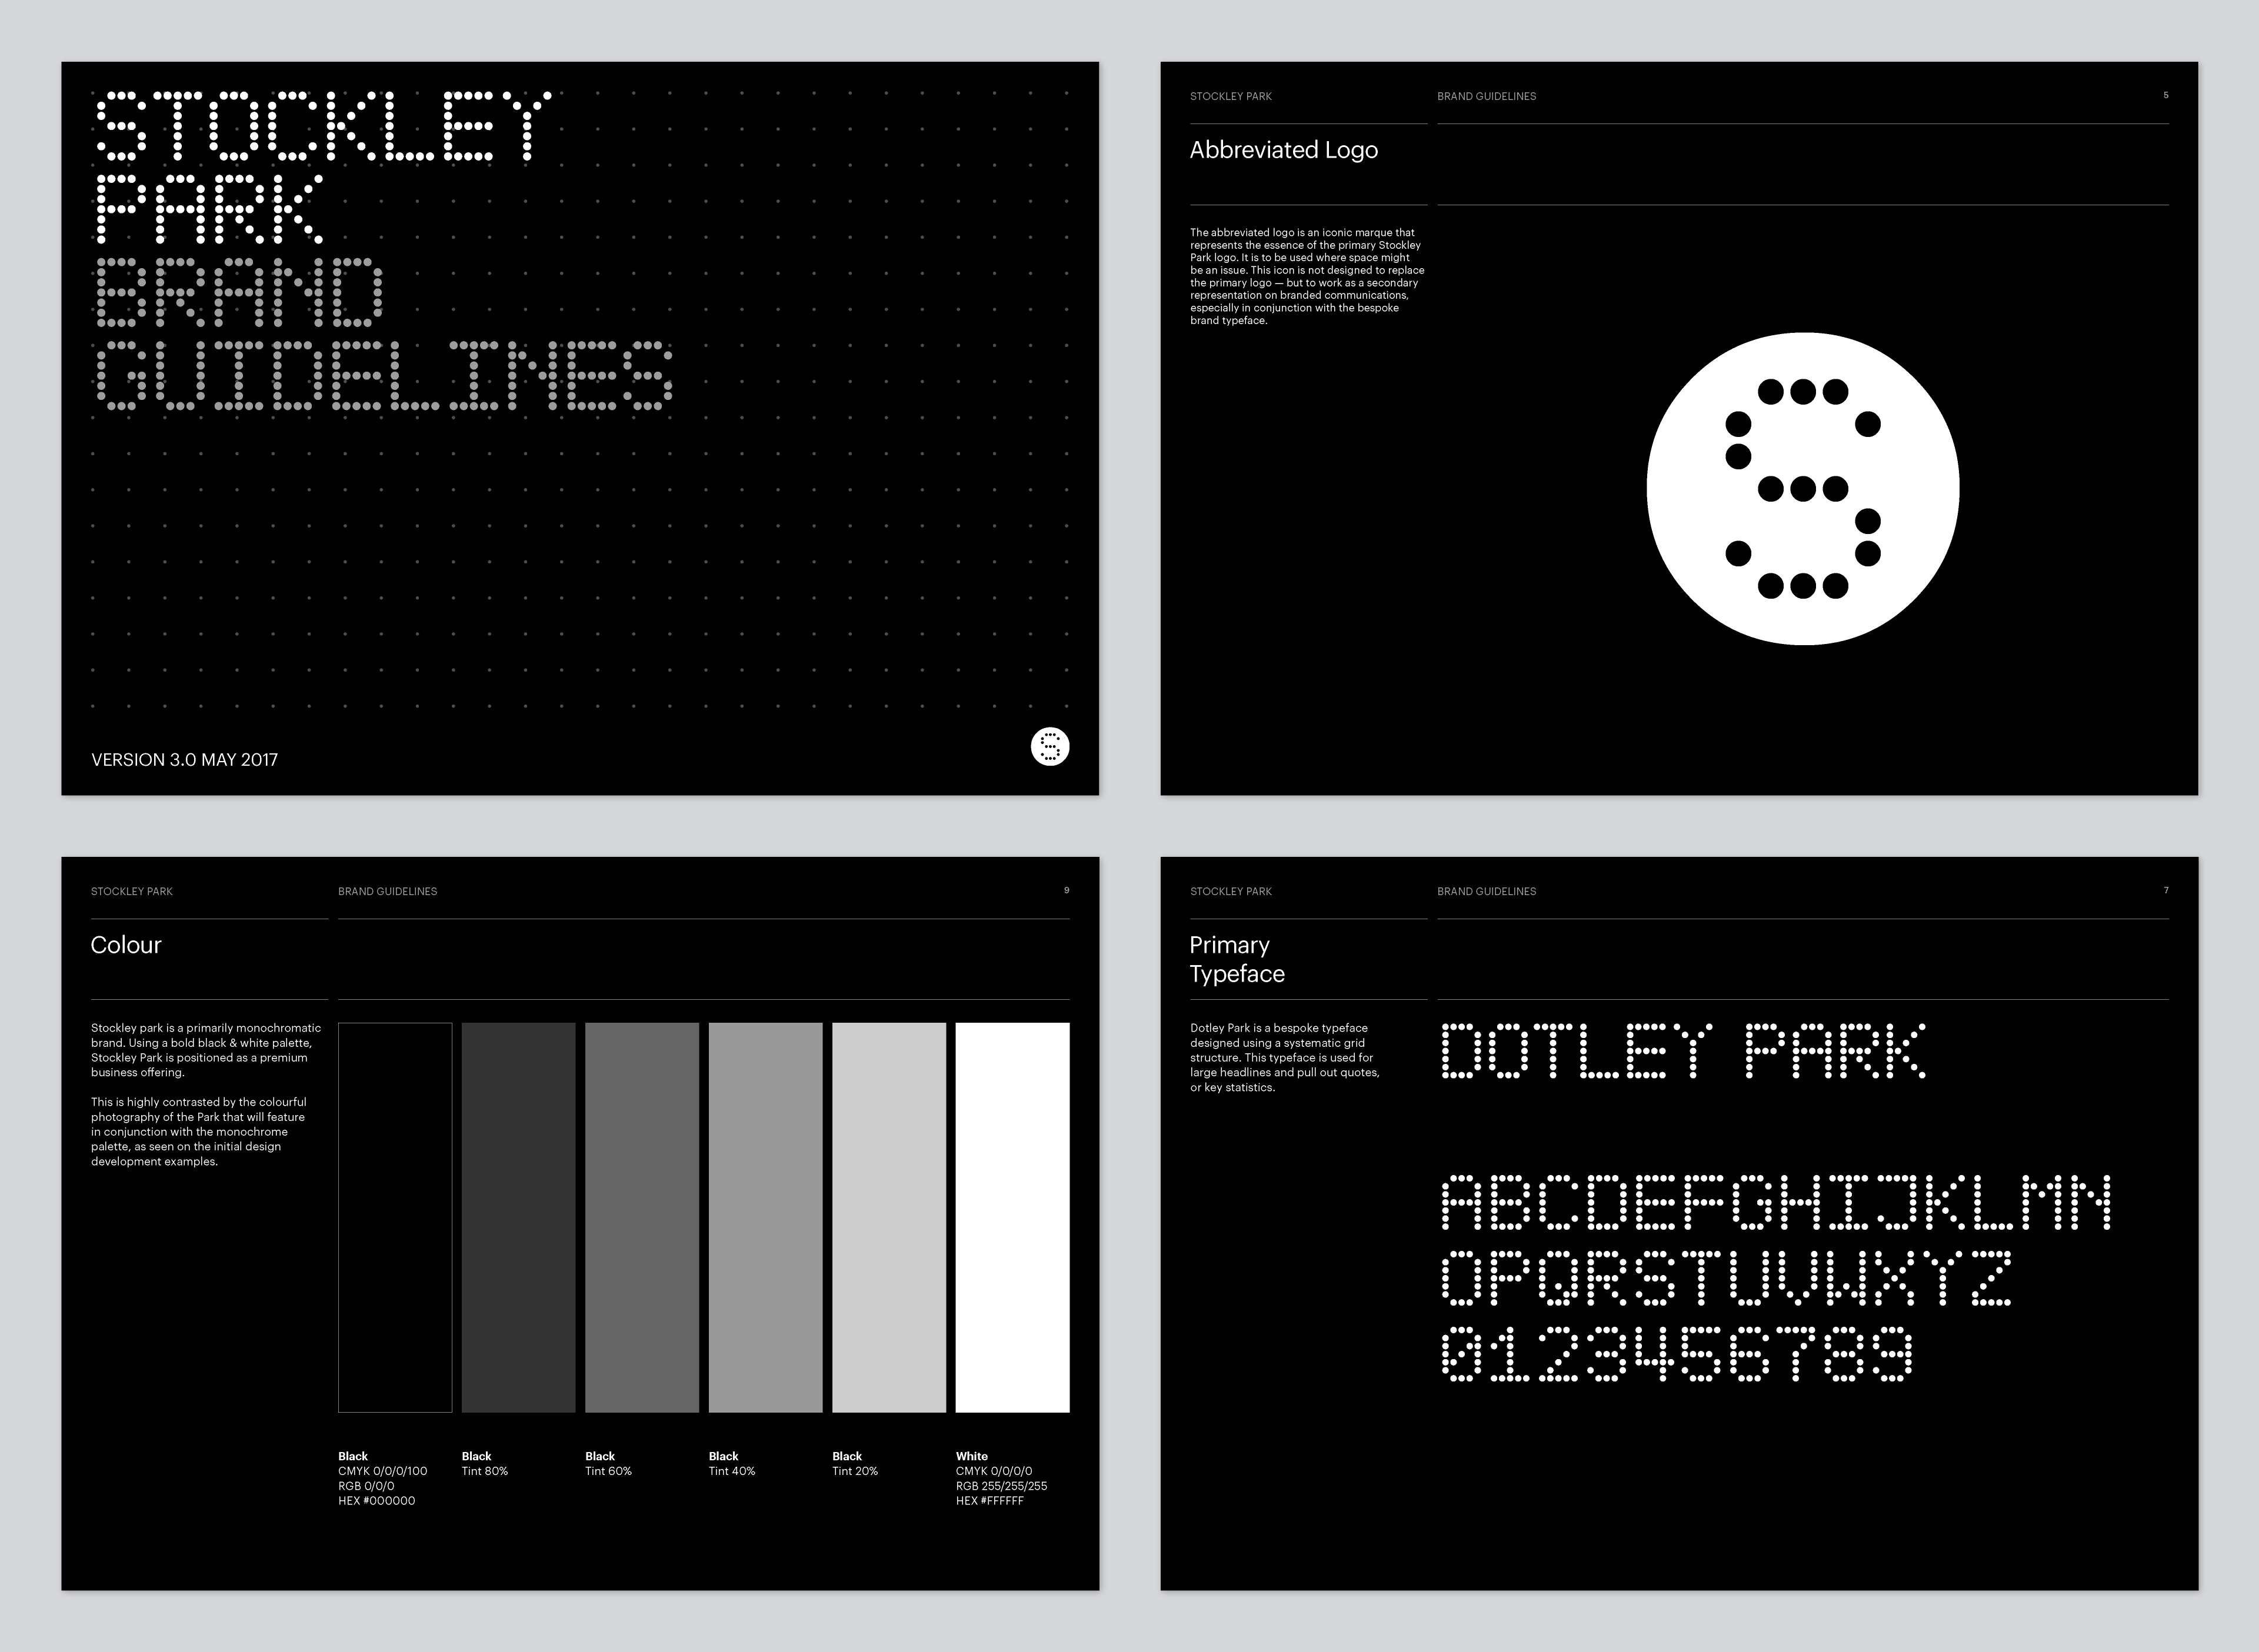 stockley-park-brand-guidelines